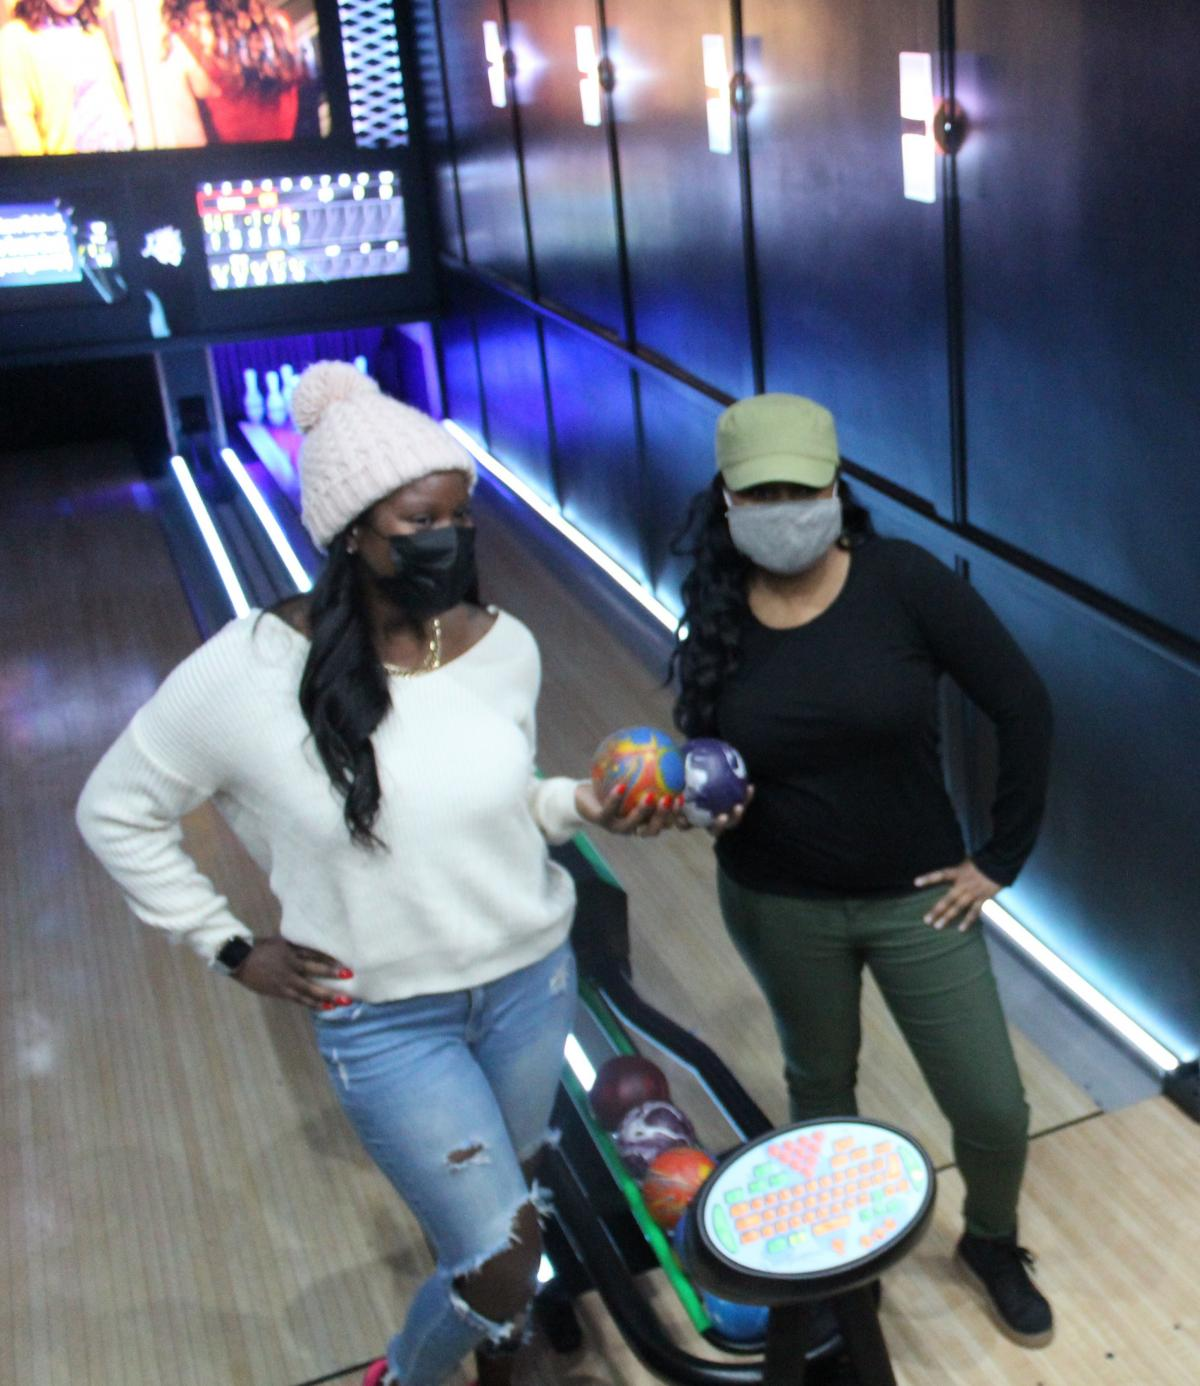 Sharise Crumley of Southfield, Mich., and Linnea Nelson of Oakpark, Mich., hold Lucky Strike's sized-down bowling balls. They weigh about 3 to 4 pounds and don't have any holes.